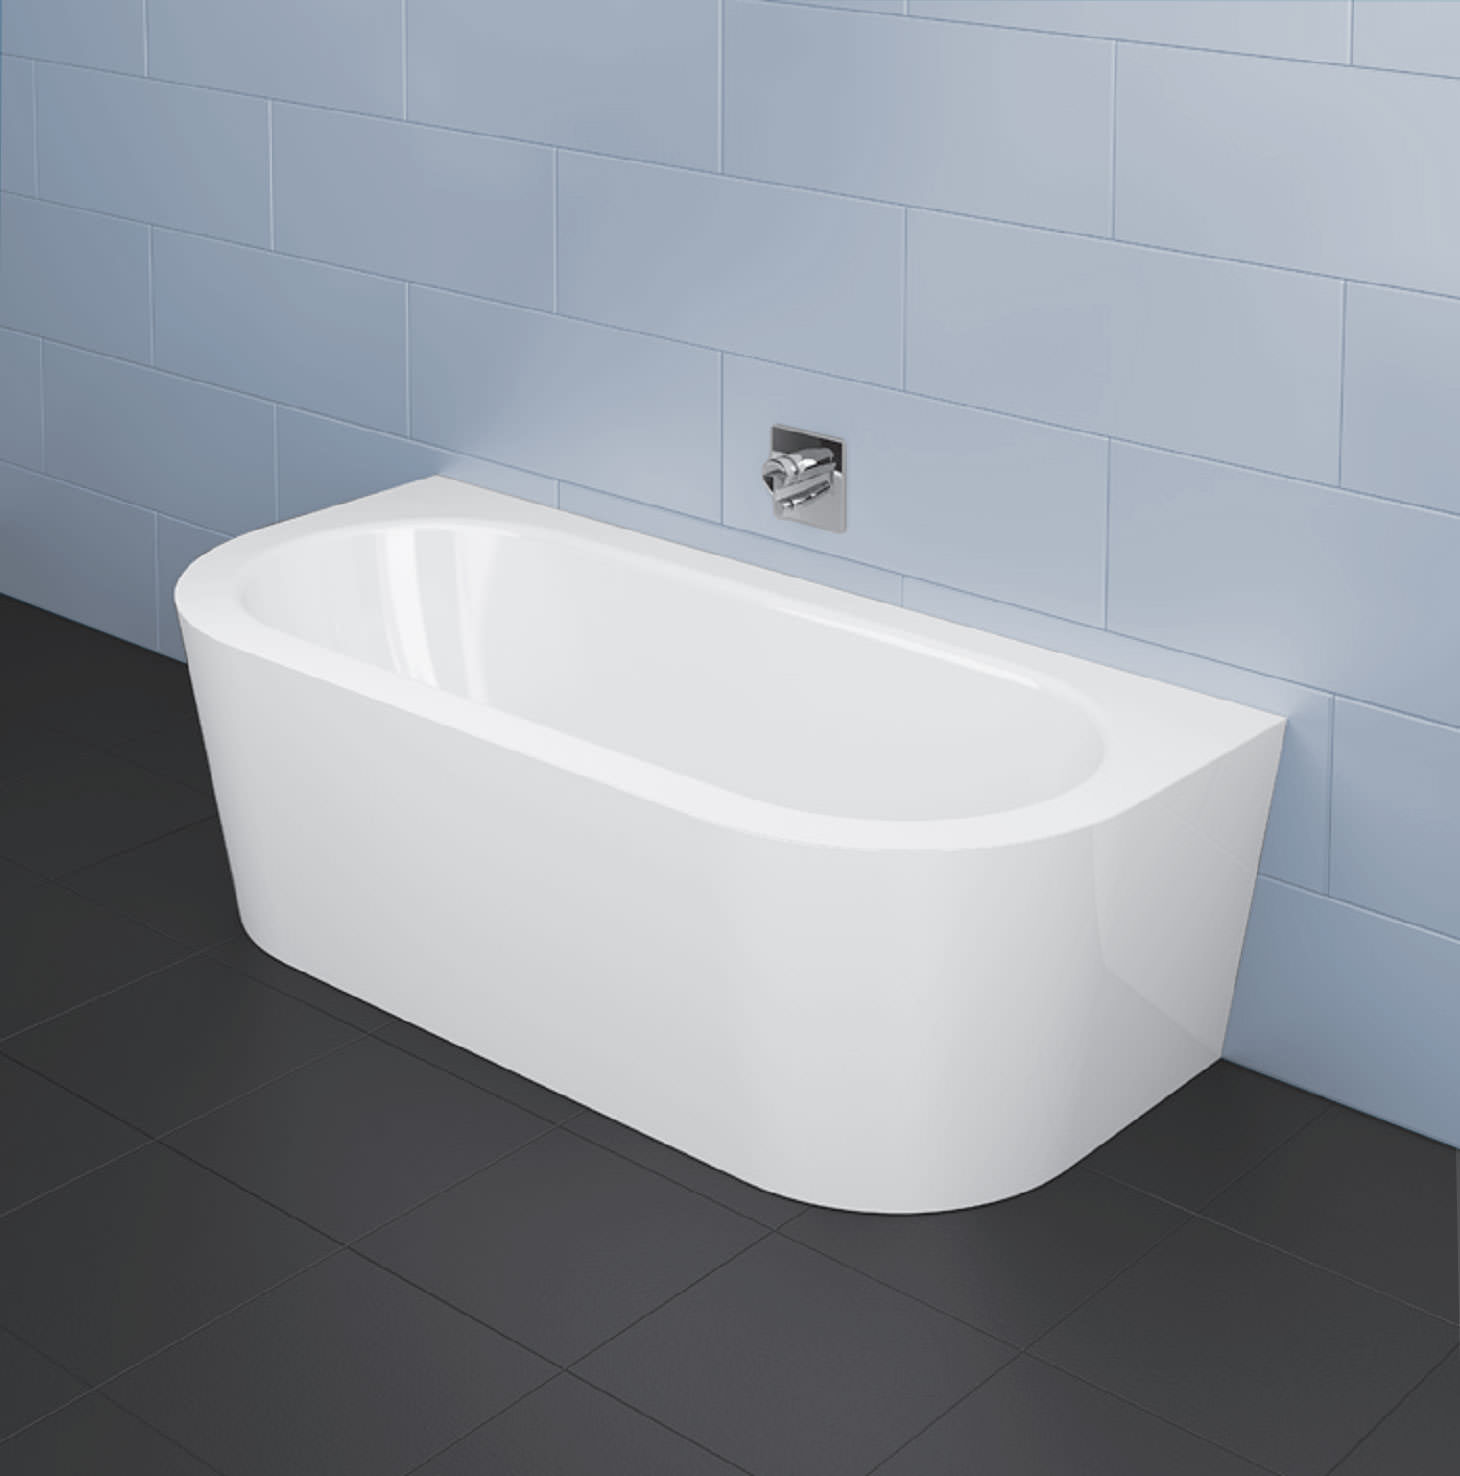 Bette Starlet I Silhouette 1850 X 850mm Steel Bath With